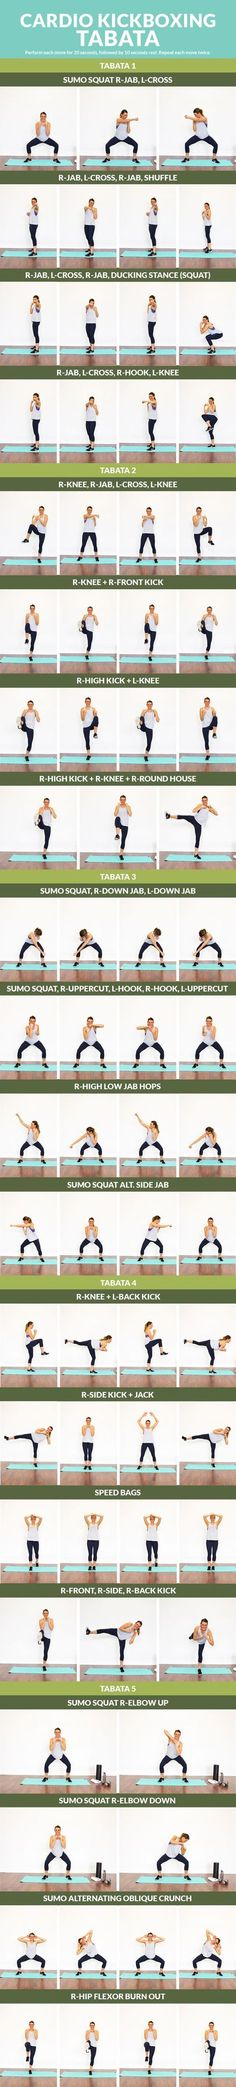 Cardio Kickboxing Tabata - A workout that'll tone your muscles and make you feel like a badass!!